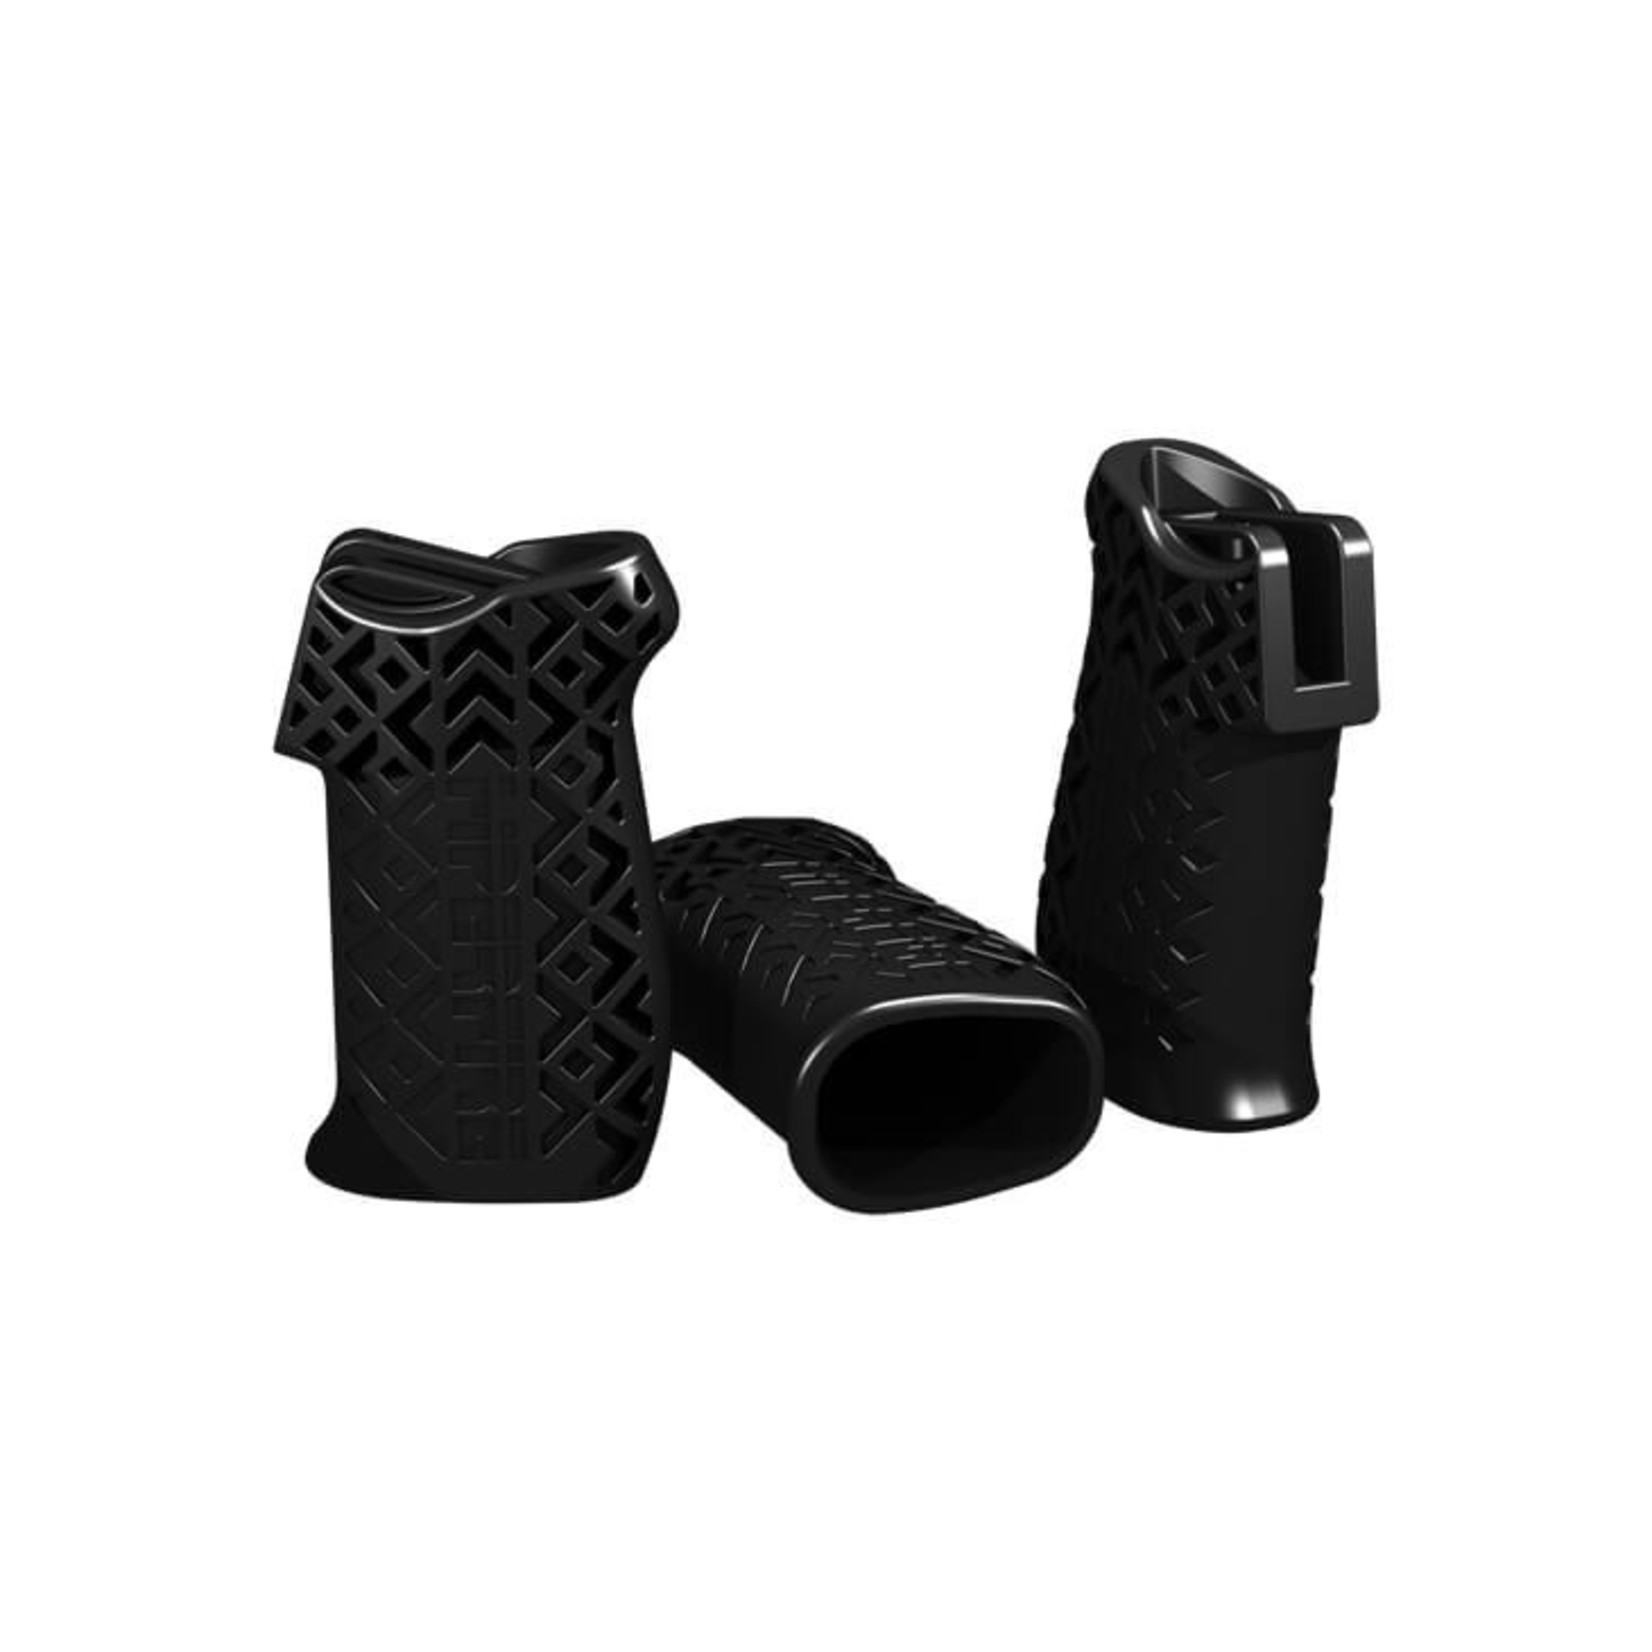 Hiperfire HIPERGRIP®, AR15/10 Pistol Grip, Standard, with grip screw and washer